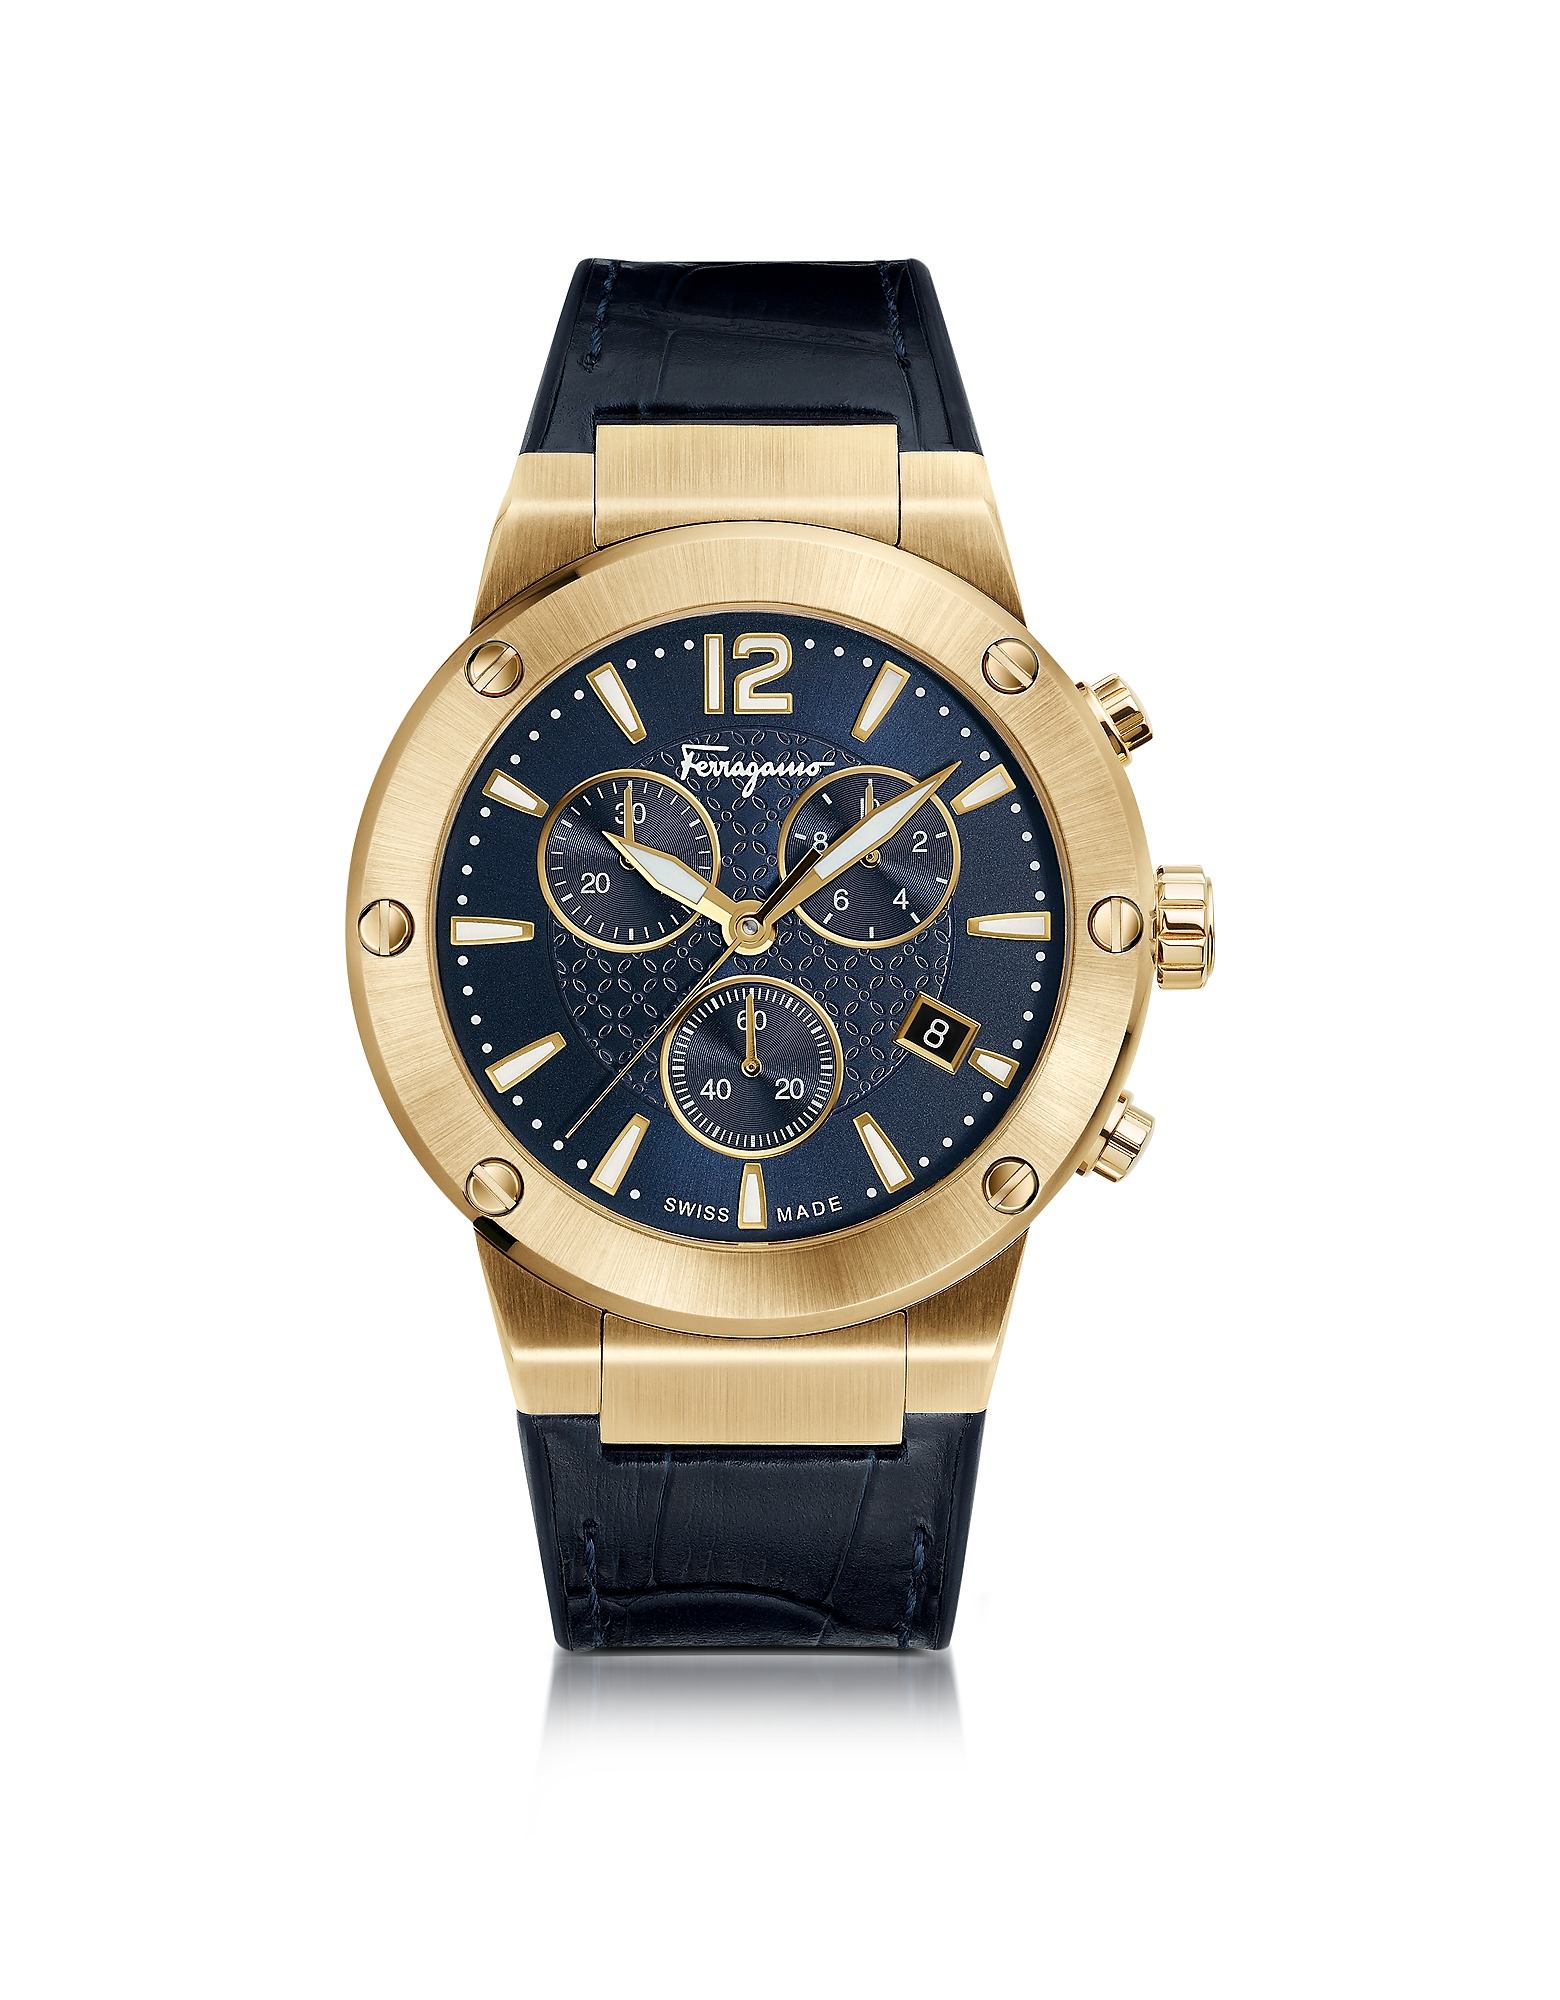 Salvatore Ferragamo Men's Watches, F-80 Gold IP Stainless Steel Men's Chronograph Watch w/Blue Croco